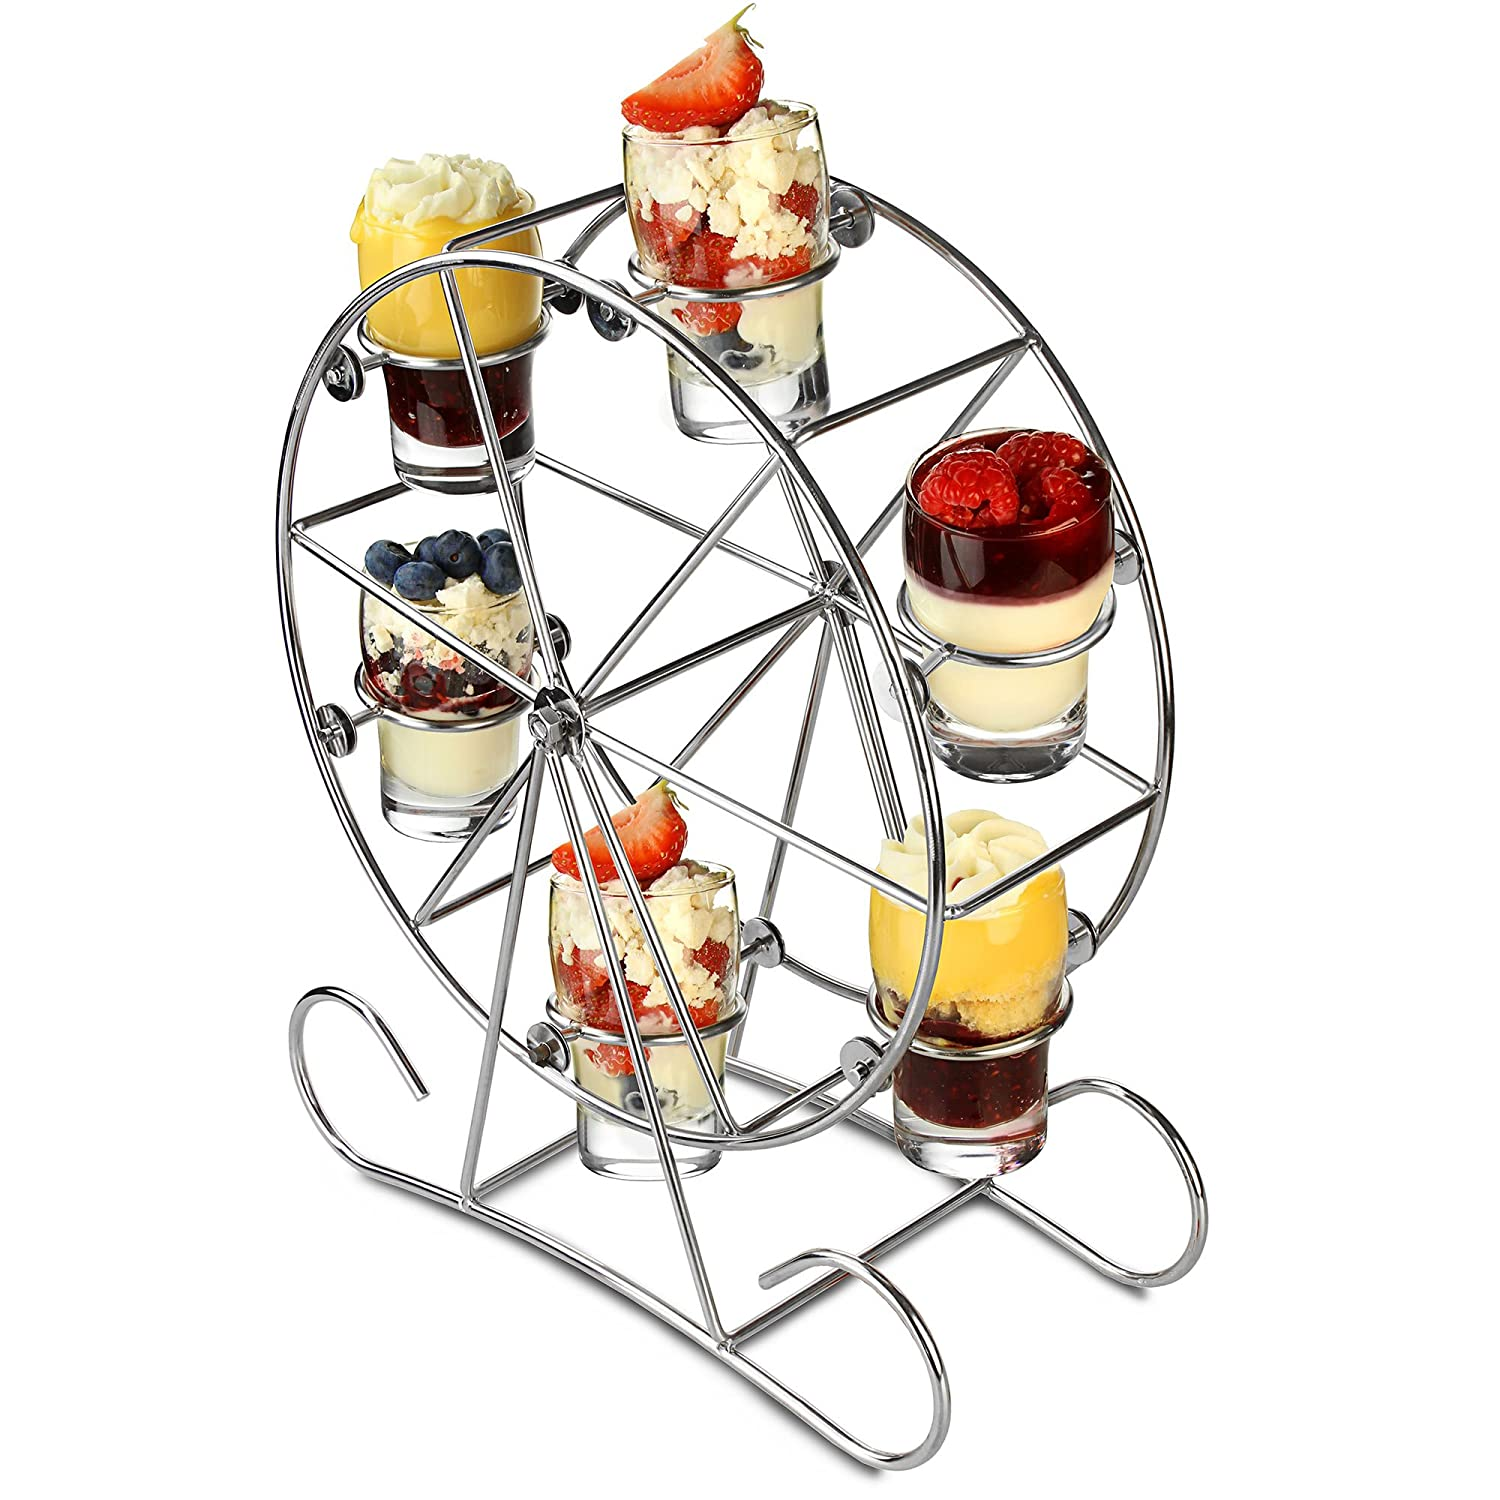 Ferris Wheel Appetiser Set - Revolving Shot Glass Stand for Drinks and Canapes dine@drinkstuff